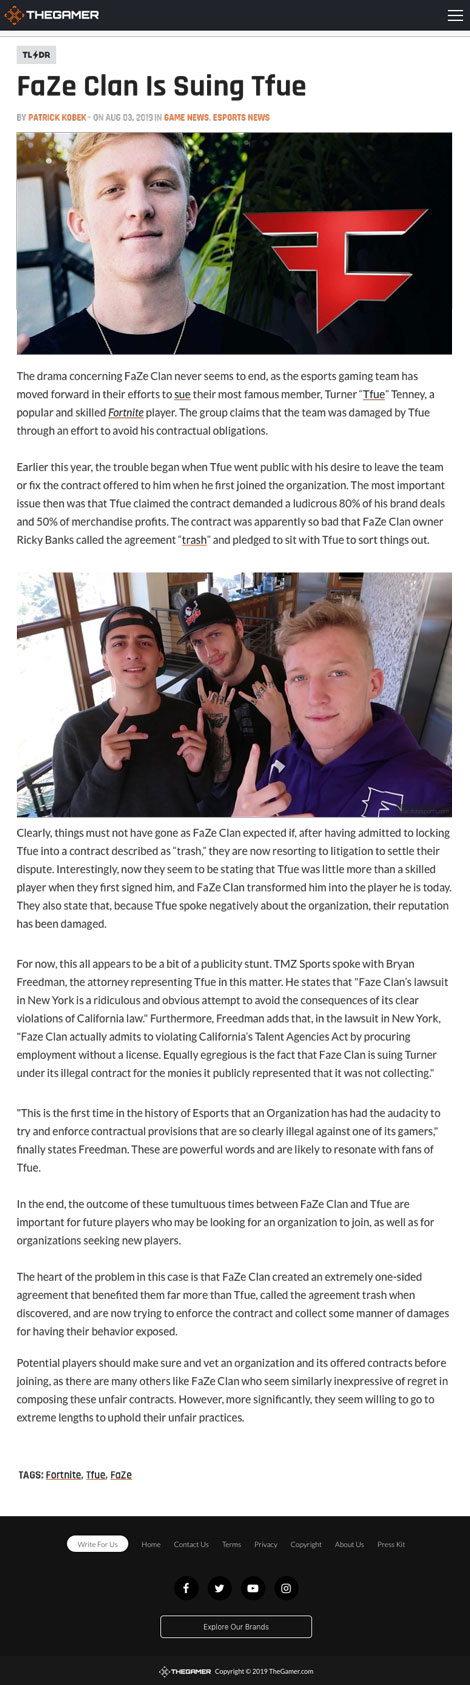 """FaZe Clan Is Suing Tfue"""" - article by TheGamer.com"""